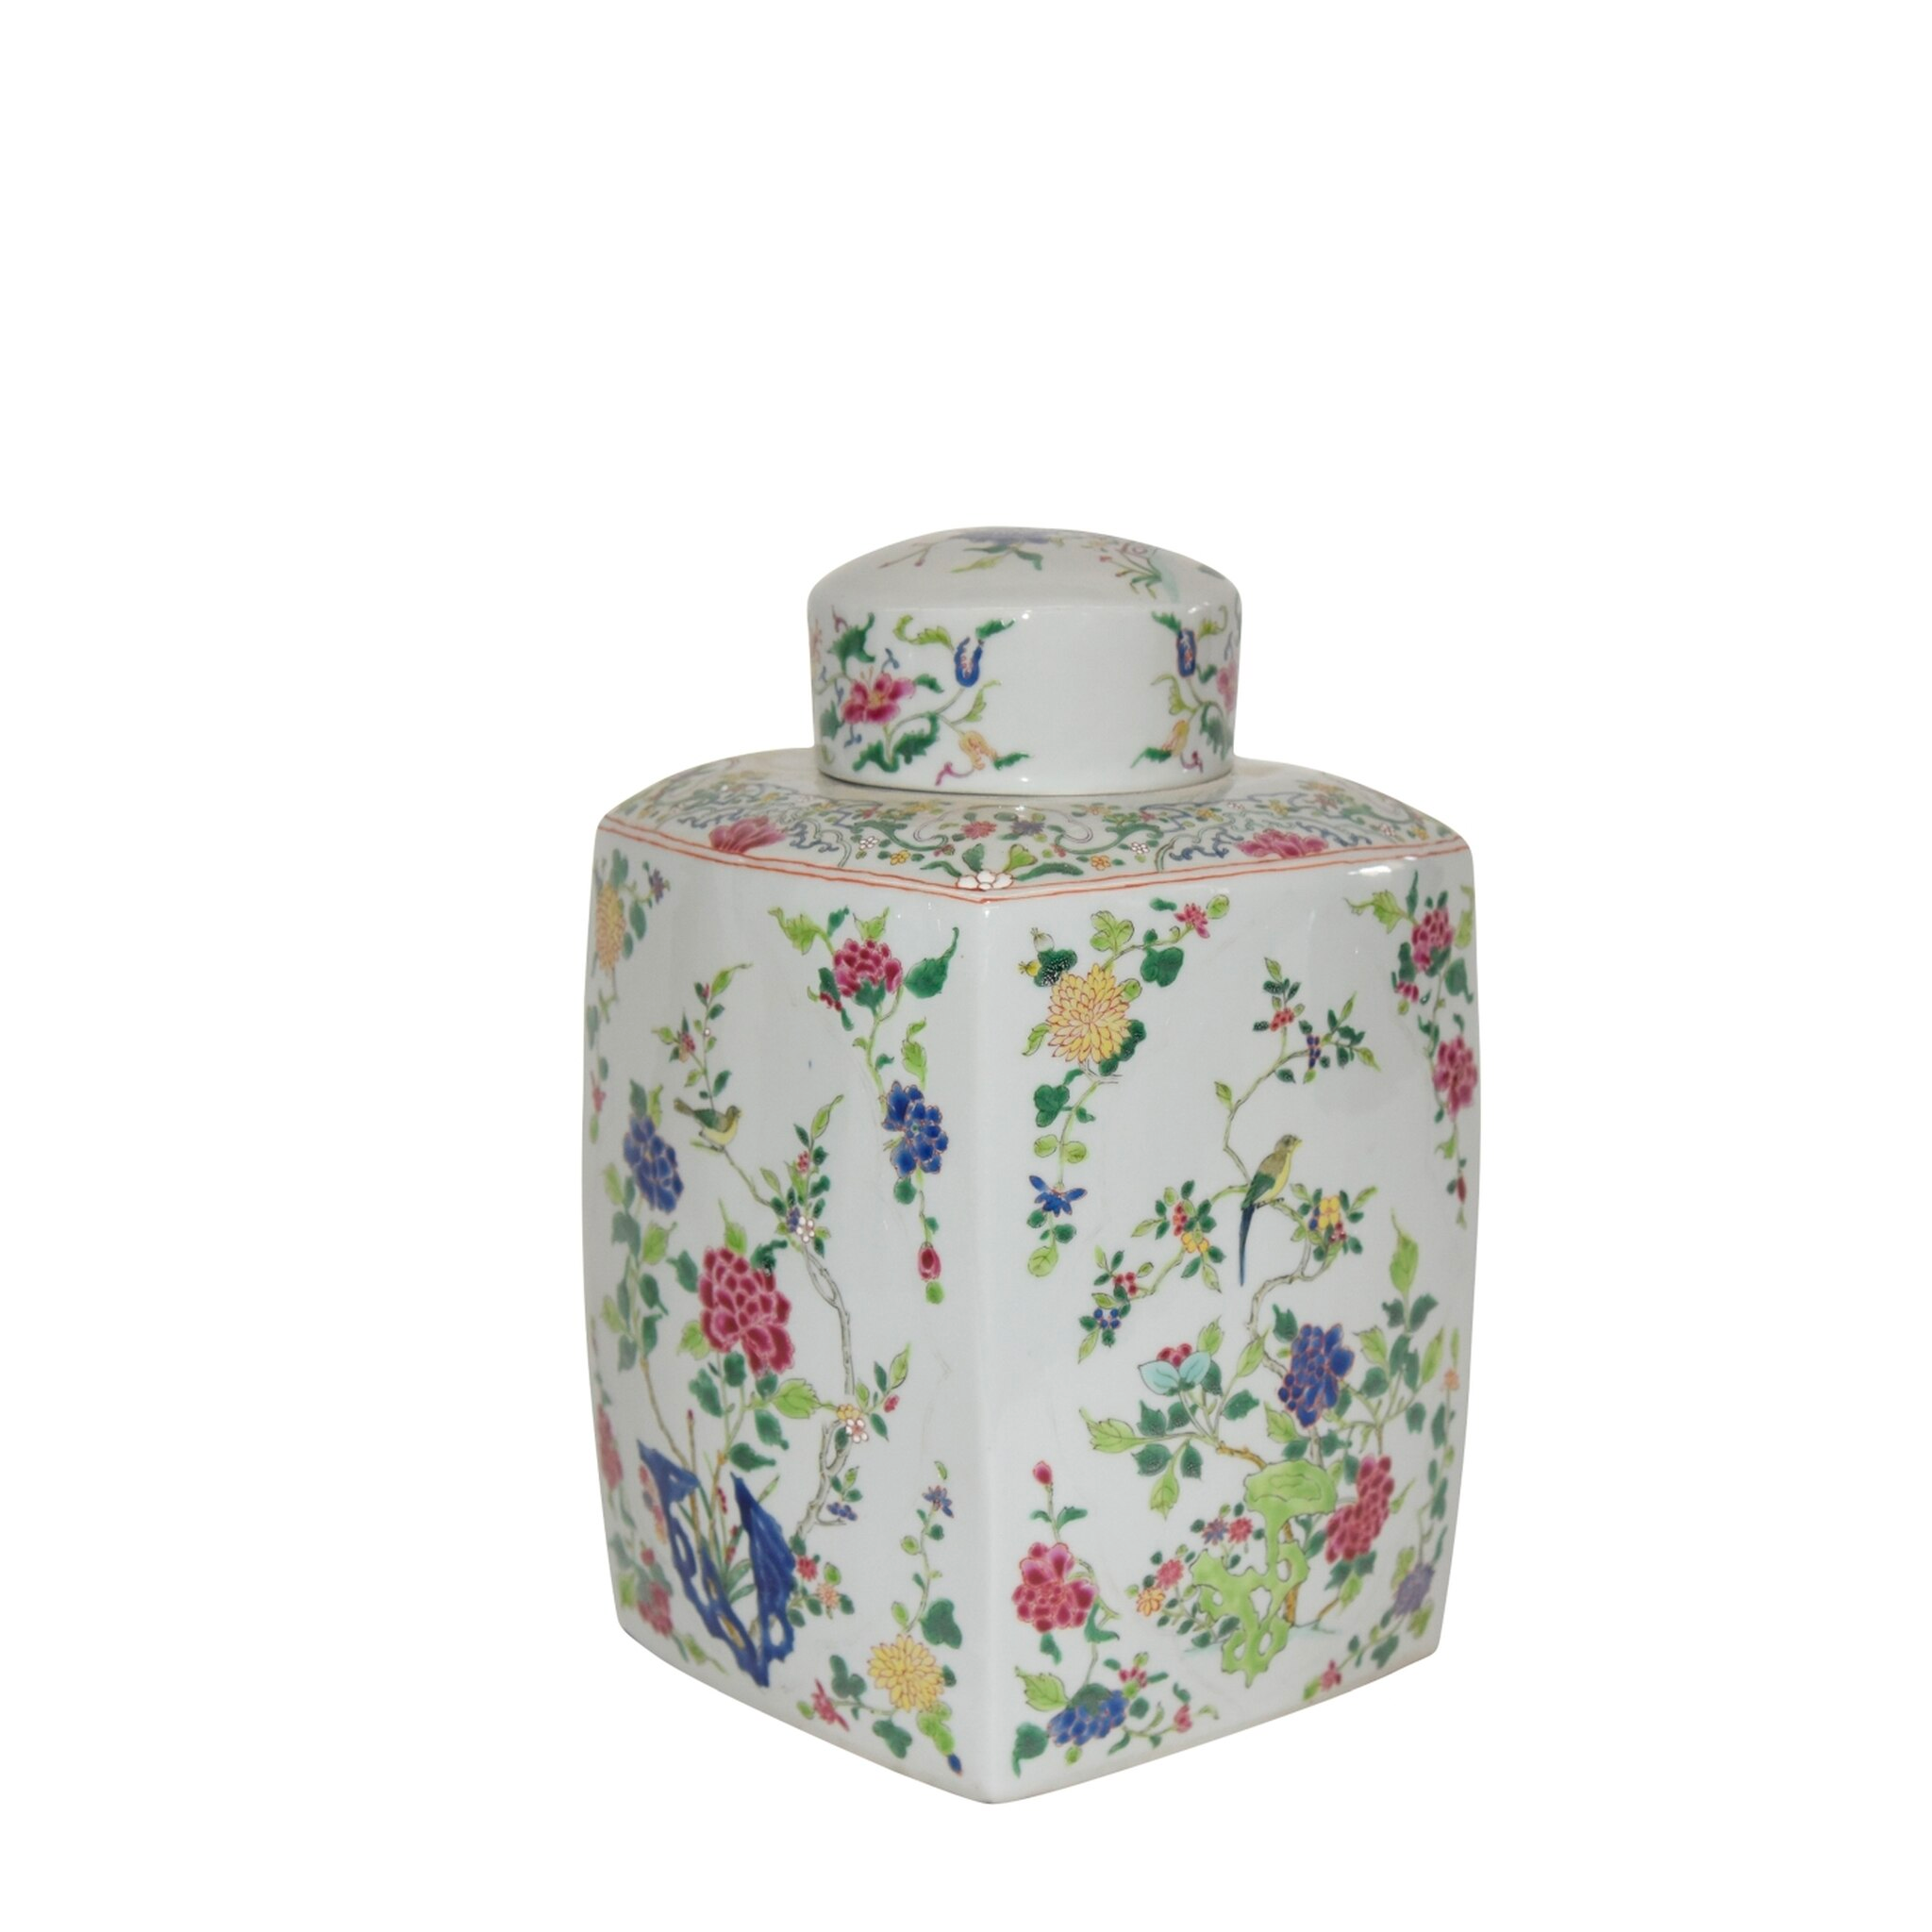 Floral Chinoisery Tea Jar - Amy Berry Home